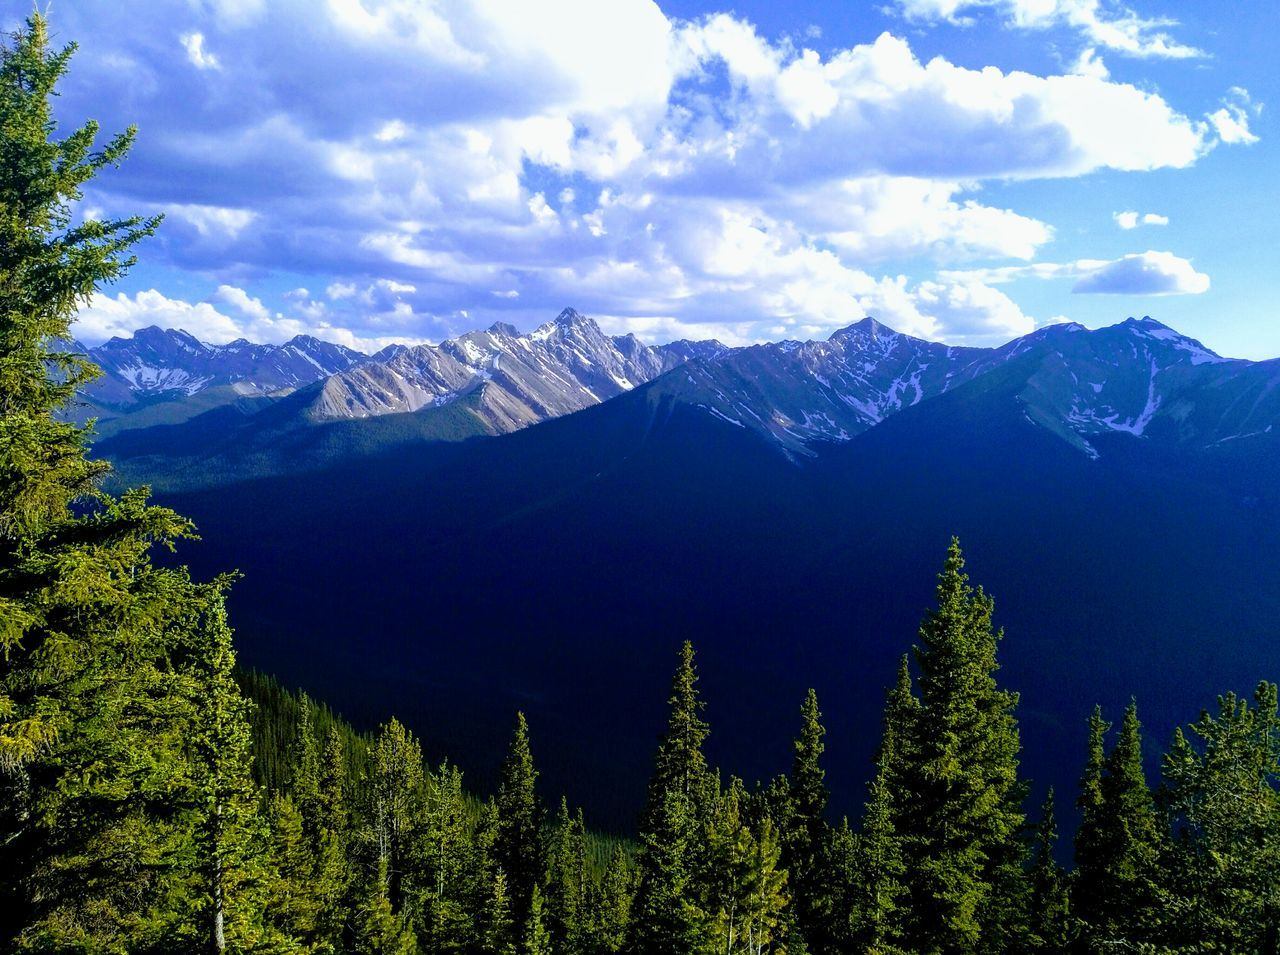 mountain, beauty in nature, nature, scenery, peak, adventure, sky, range, forest, no people, scenics, high, height, outdoors, day, tree